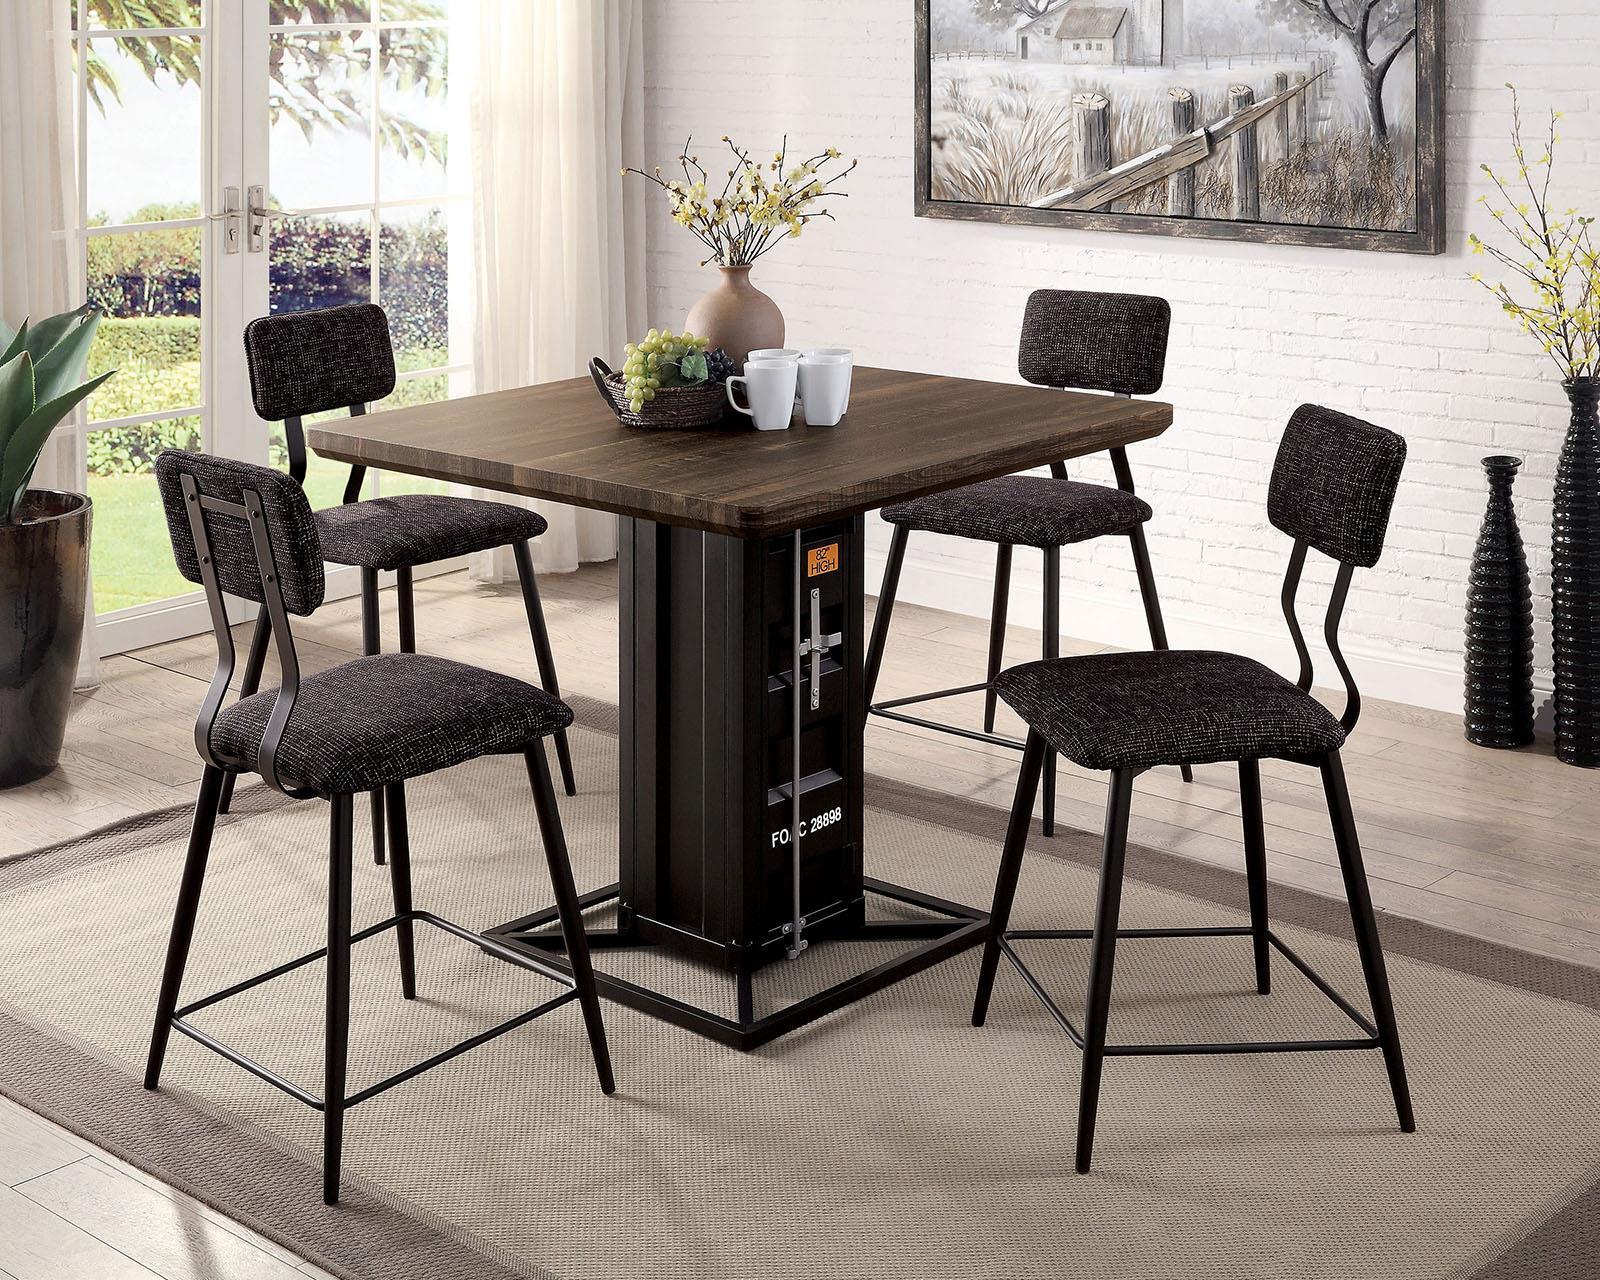 Dicarda Sand Black 5PC Dining Set - KTL Furniture